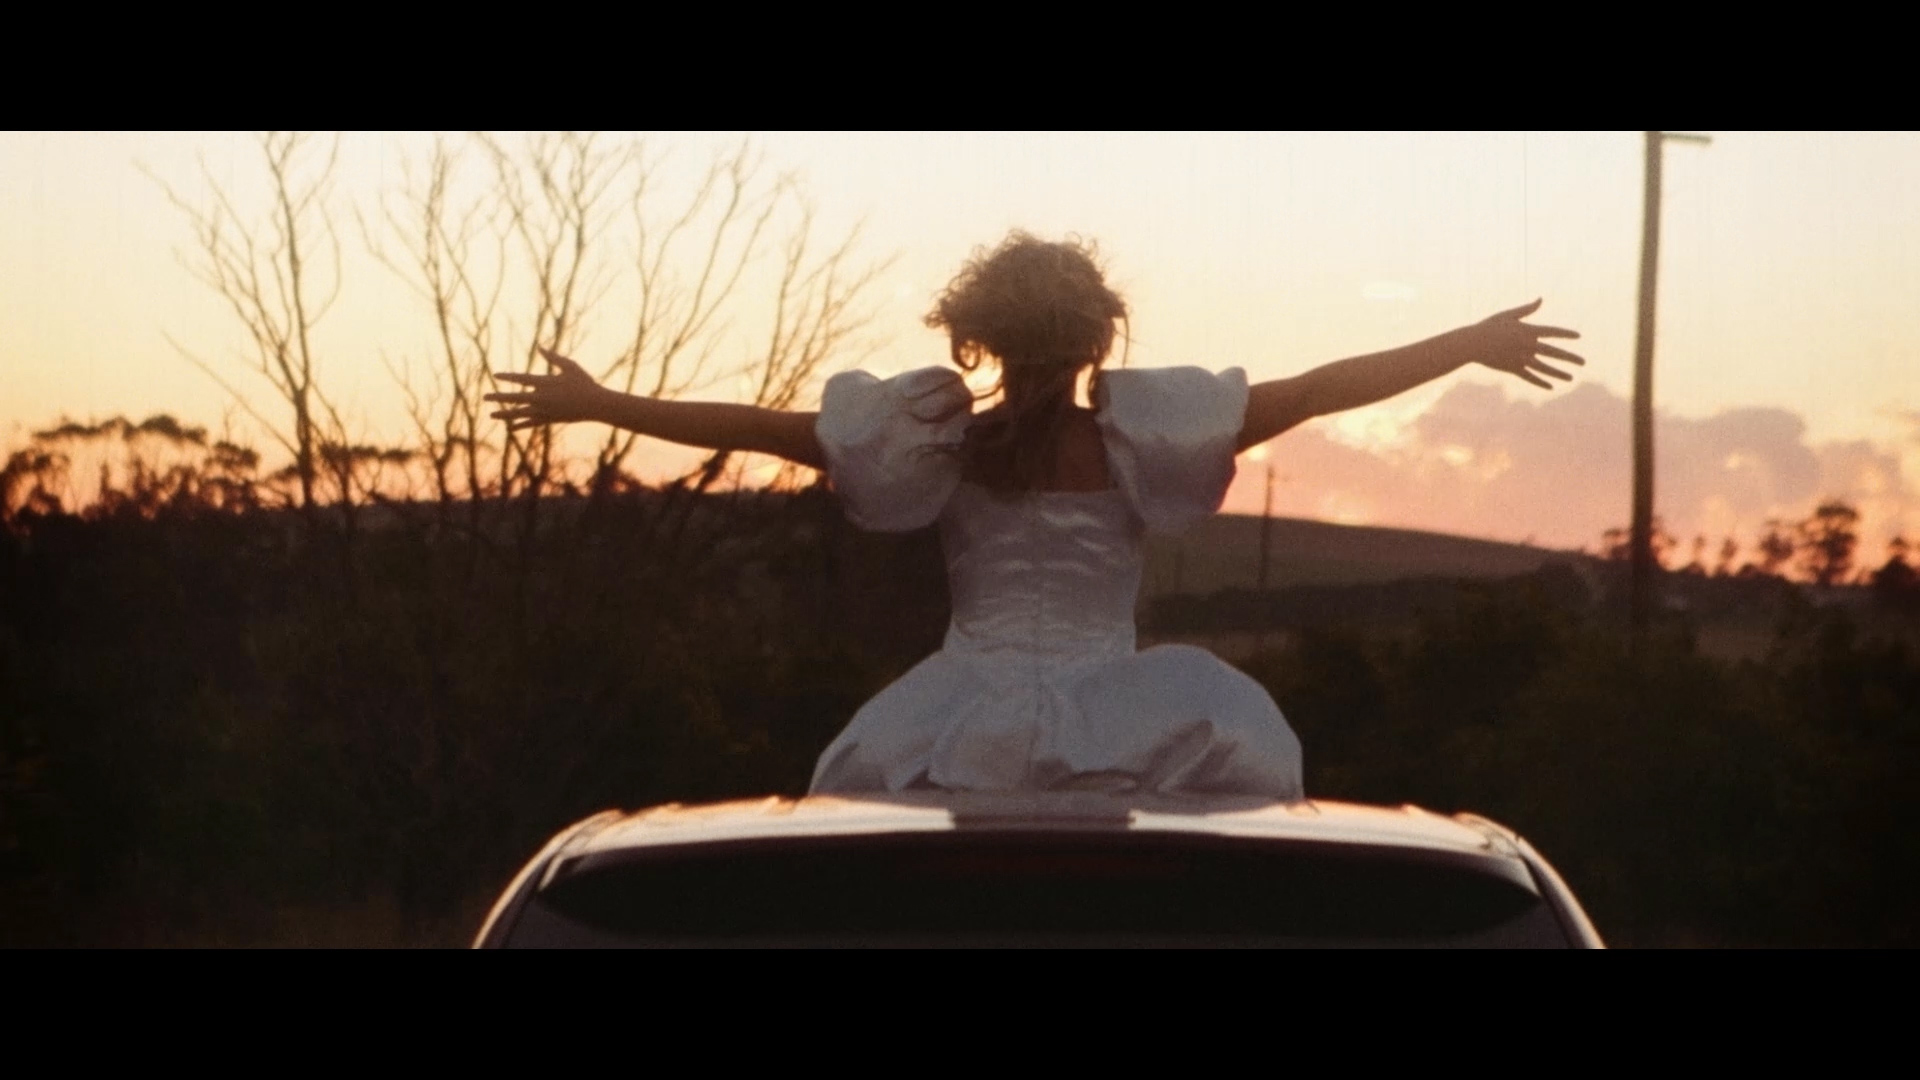 The Happiest Day of my Life - Raptuously Becky (Jeni Bezuidenhout) embraces the fading light of the happiest day of her life.